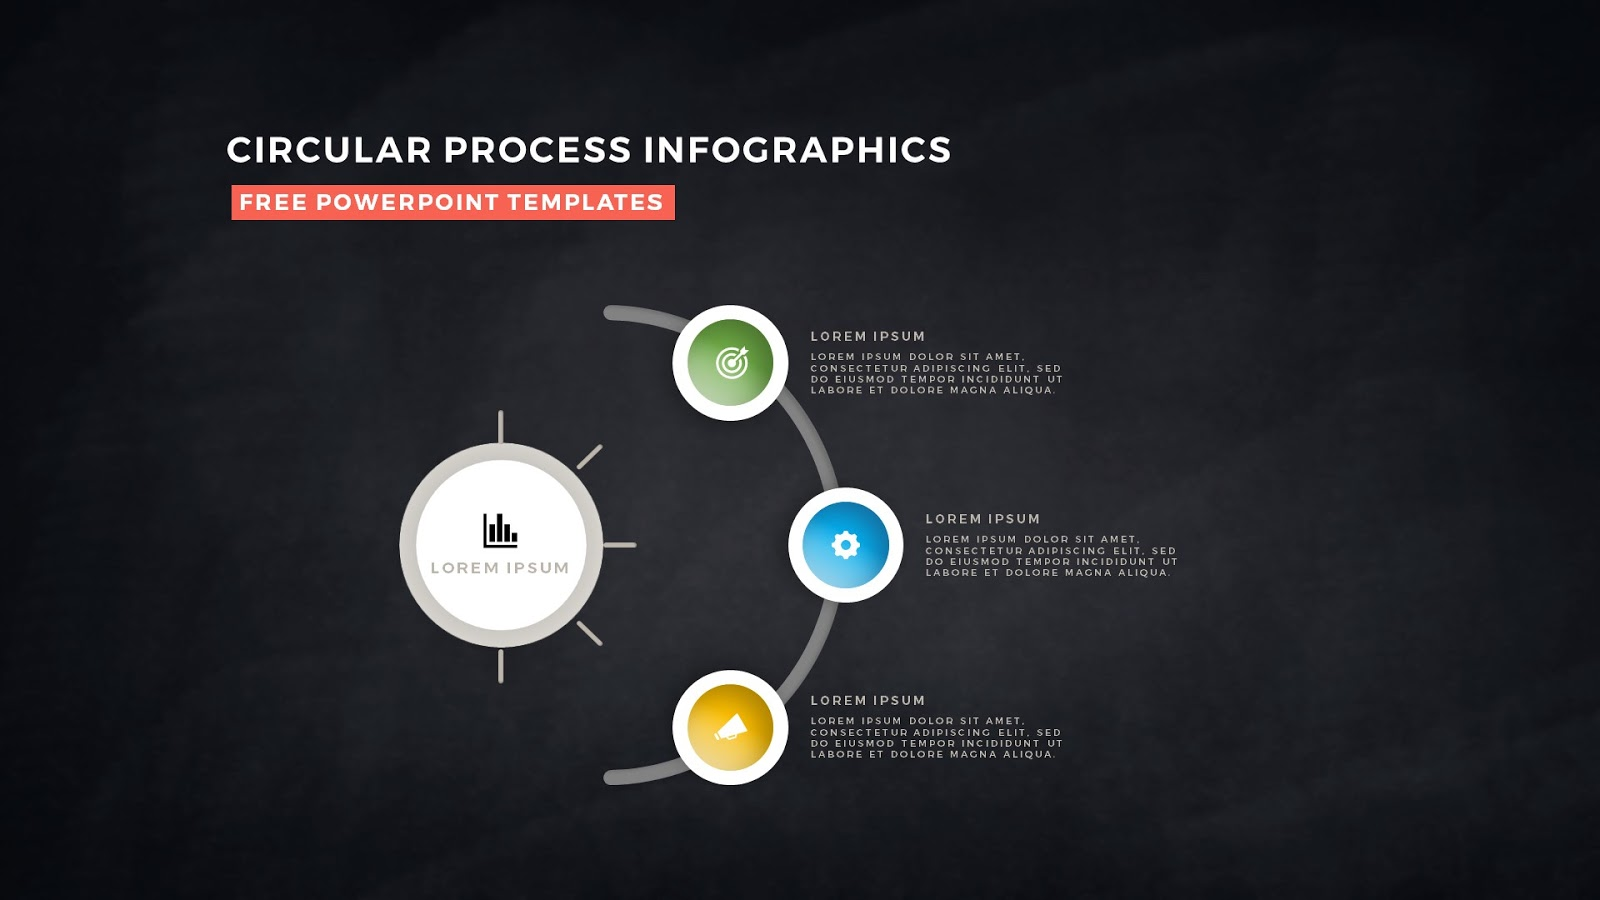 Process Diagram Template Powerpoint Dell Dimension 8400 Motherboard Circular Infographic Diagrams For Free